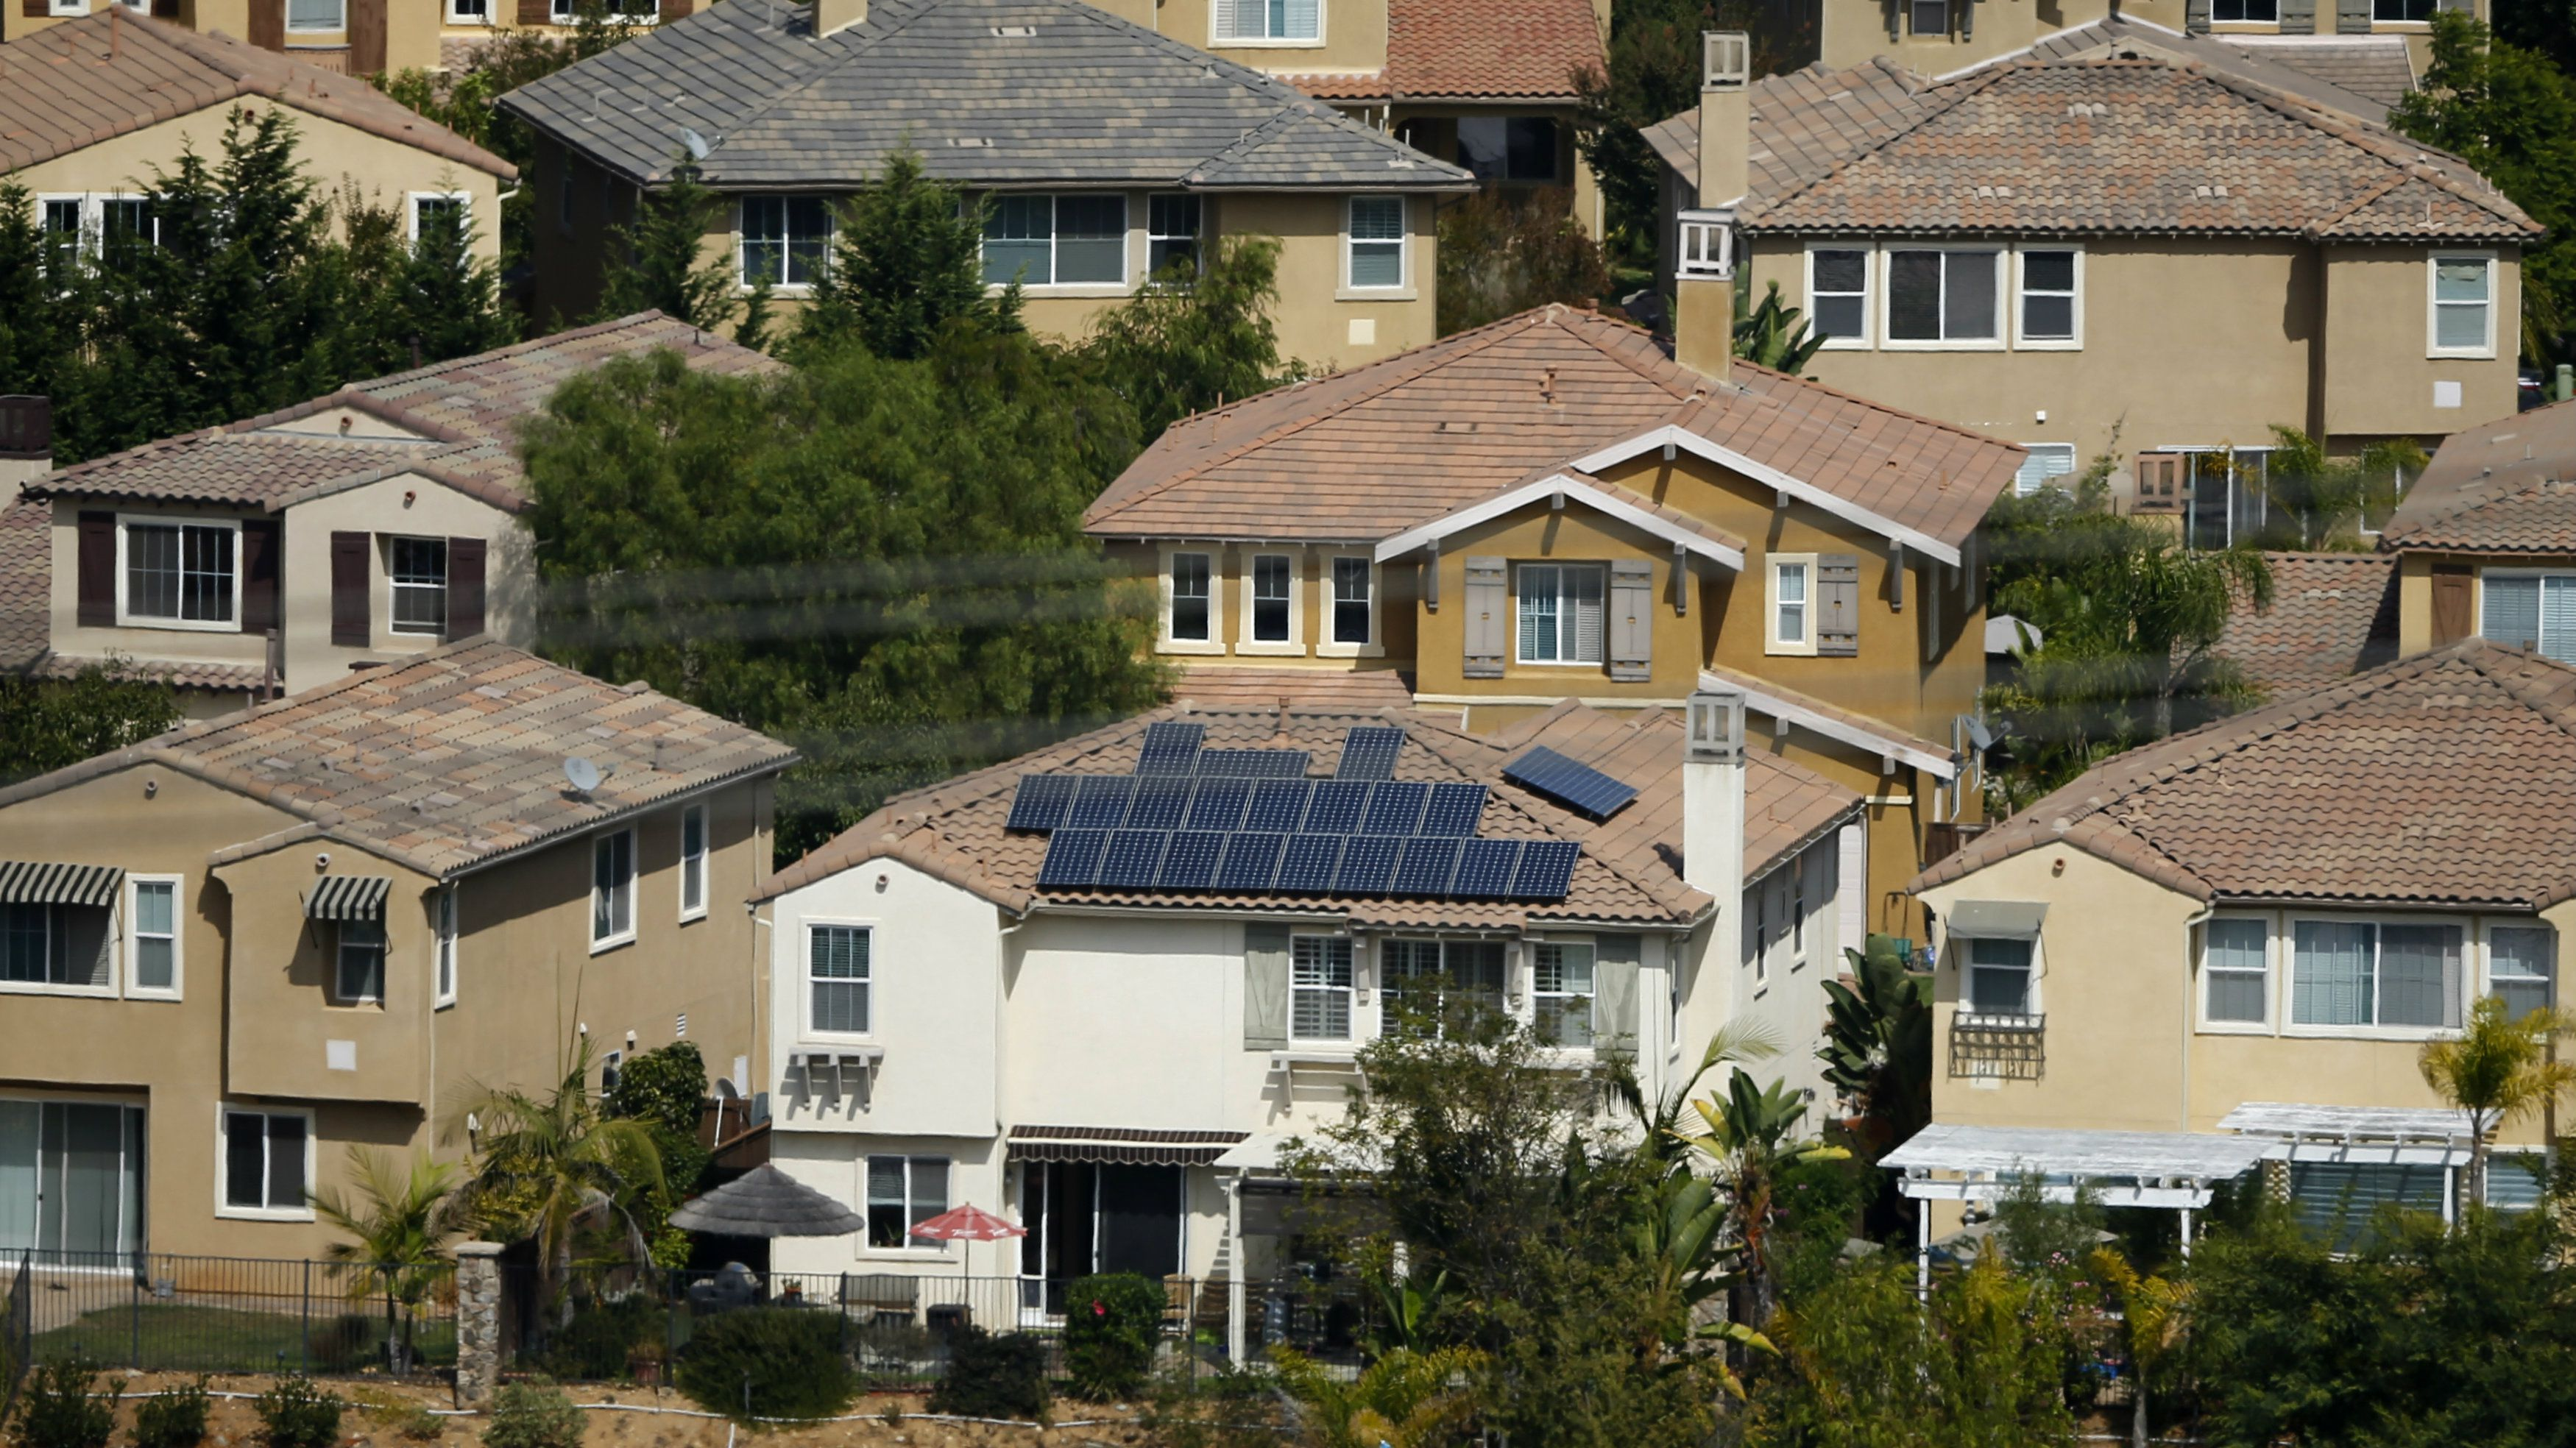 A home with solar panels on its roof is shown in a residential neighborhood in San Marcos, California